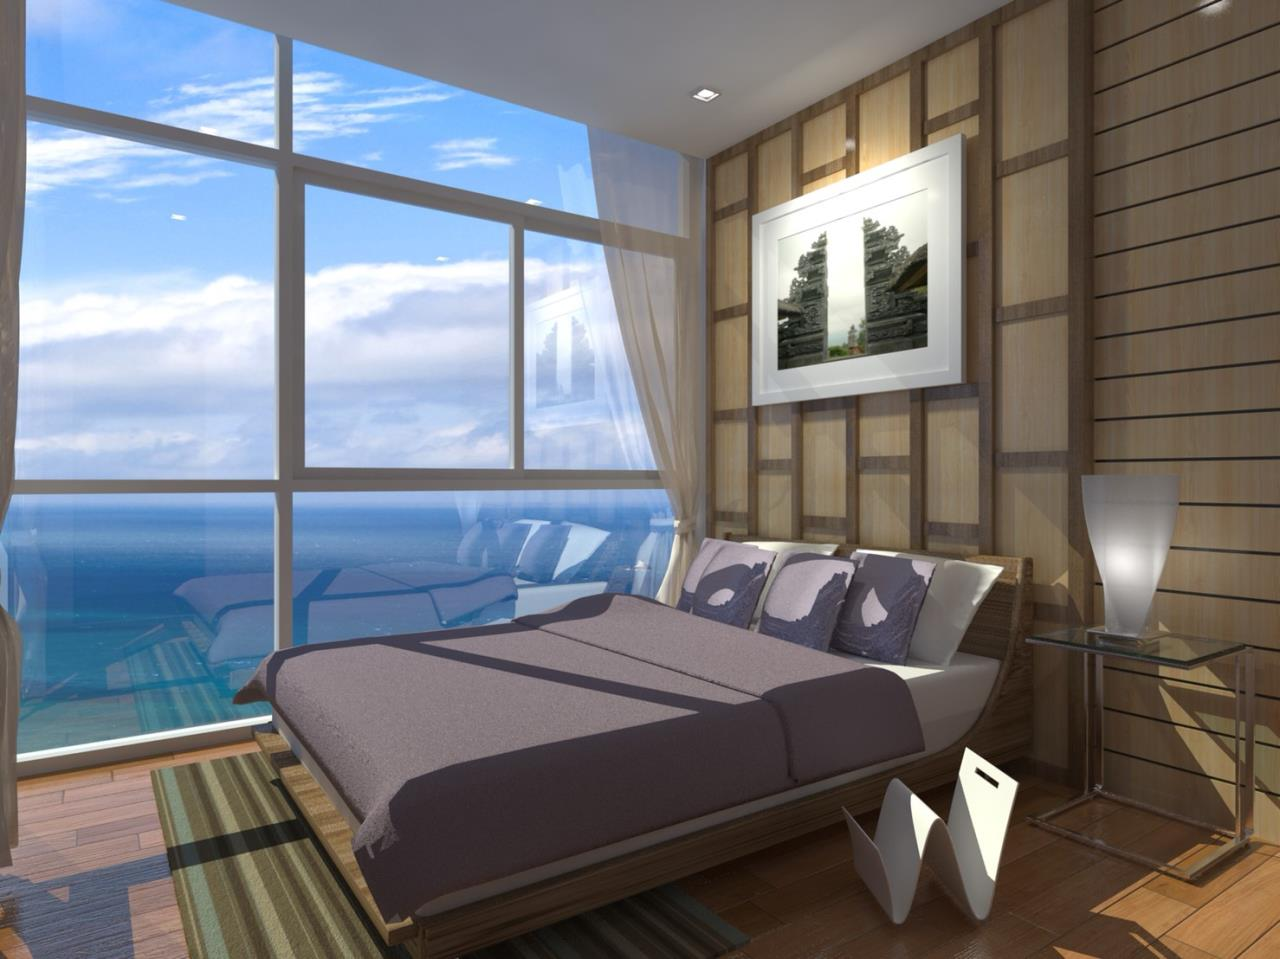 Signature Realty ( Thailand ) Co Ltd Agency's Furnished 1bedroom 46 sq.m condo with jacuzzi floor 21-31 at The Grand Jomtein Beach Pattaya 29